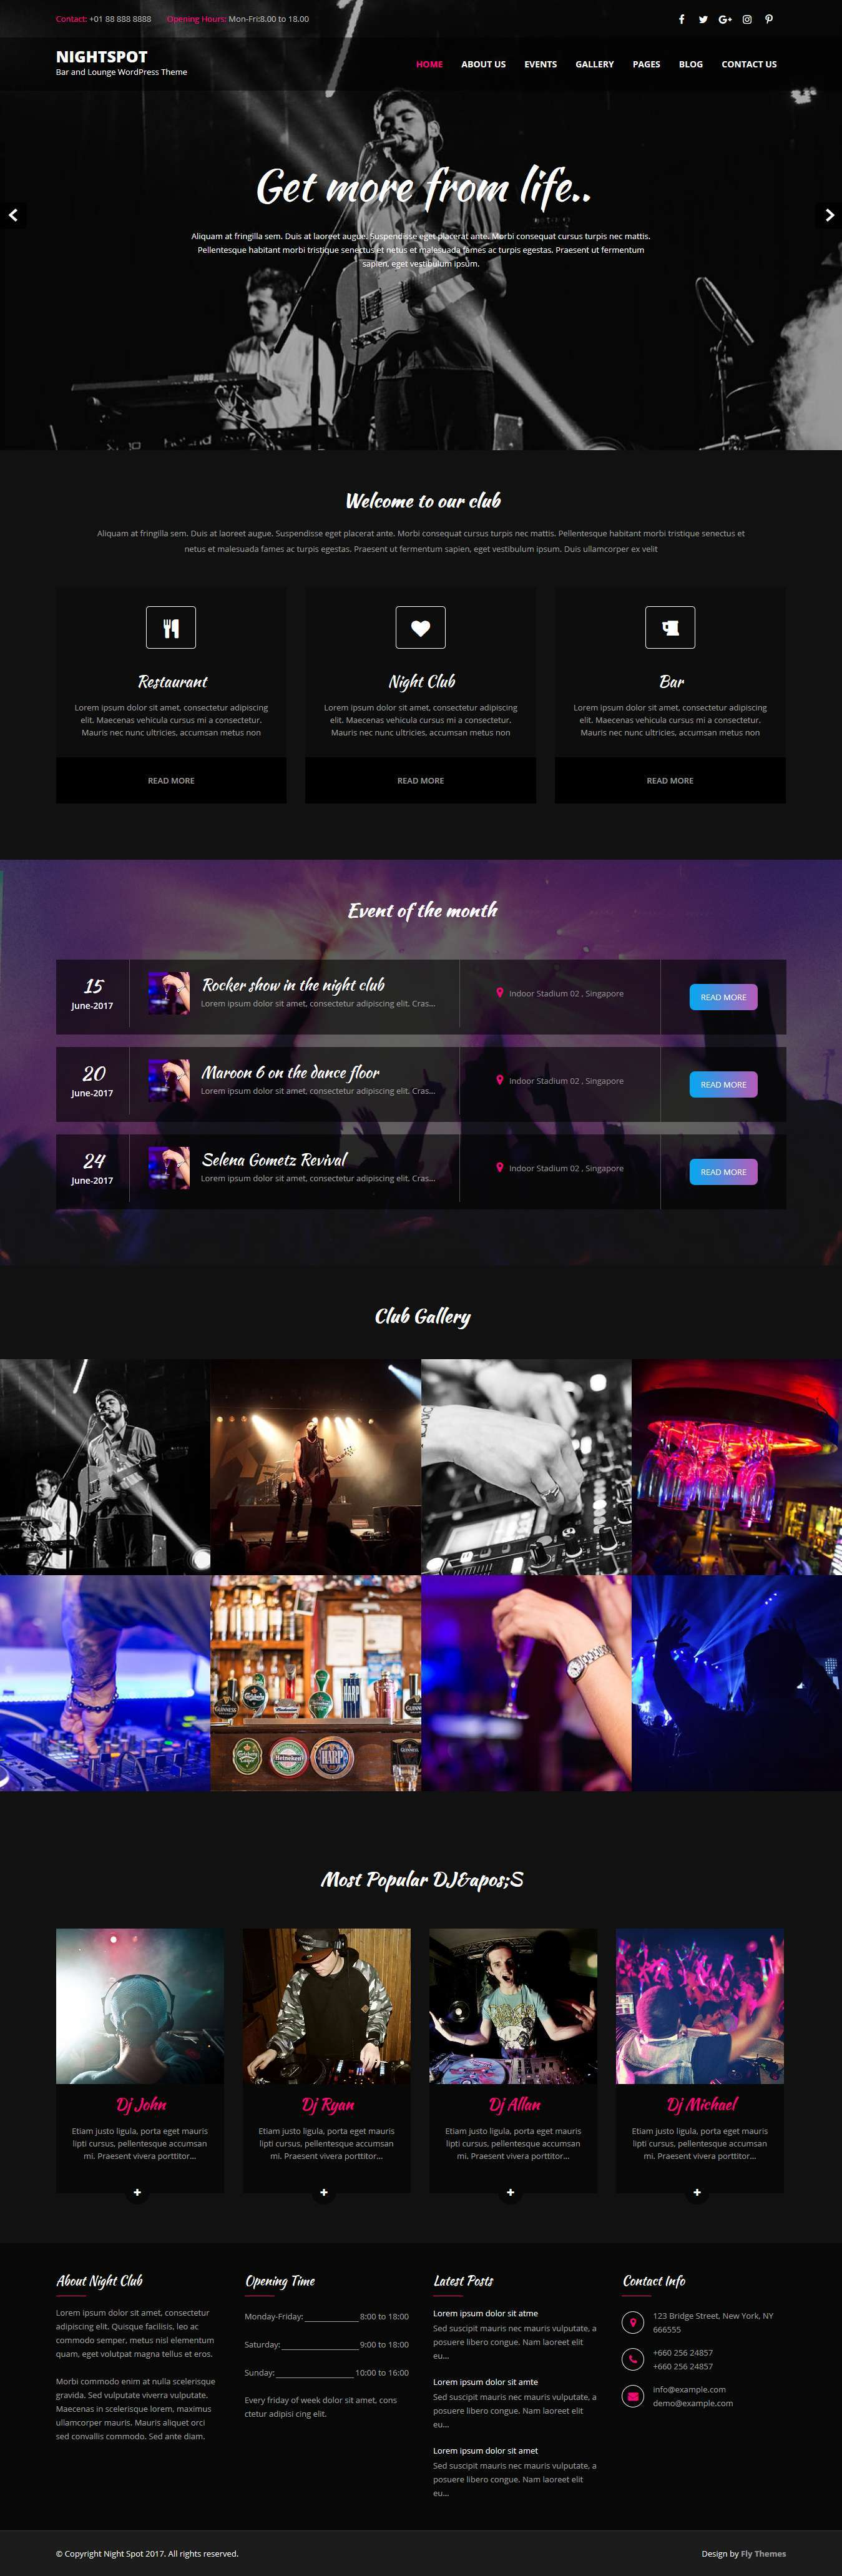 Nightspot WordPress Theme